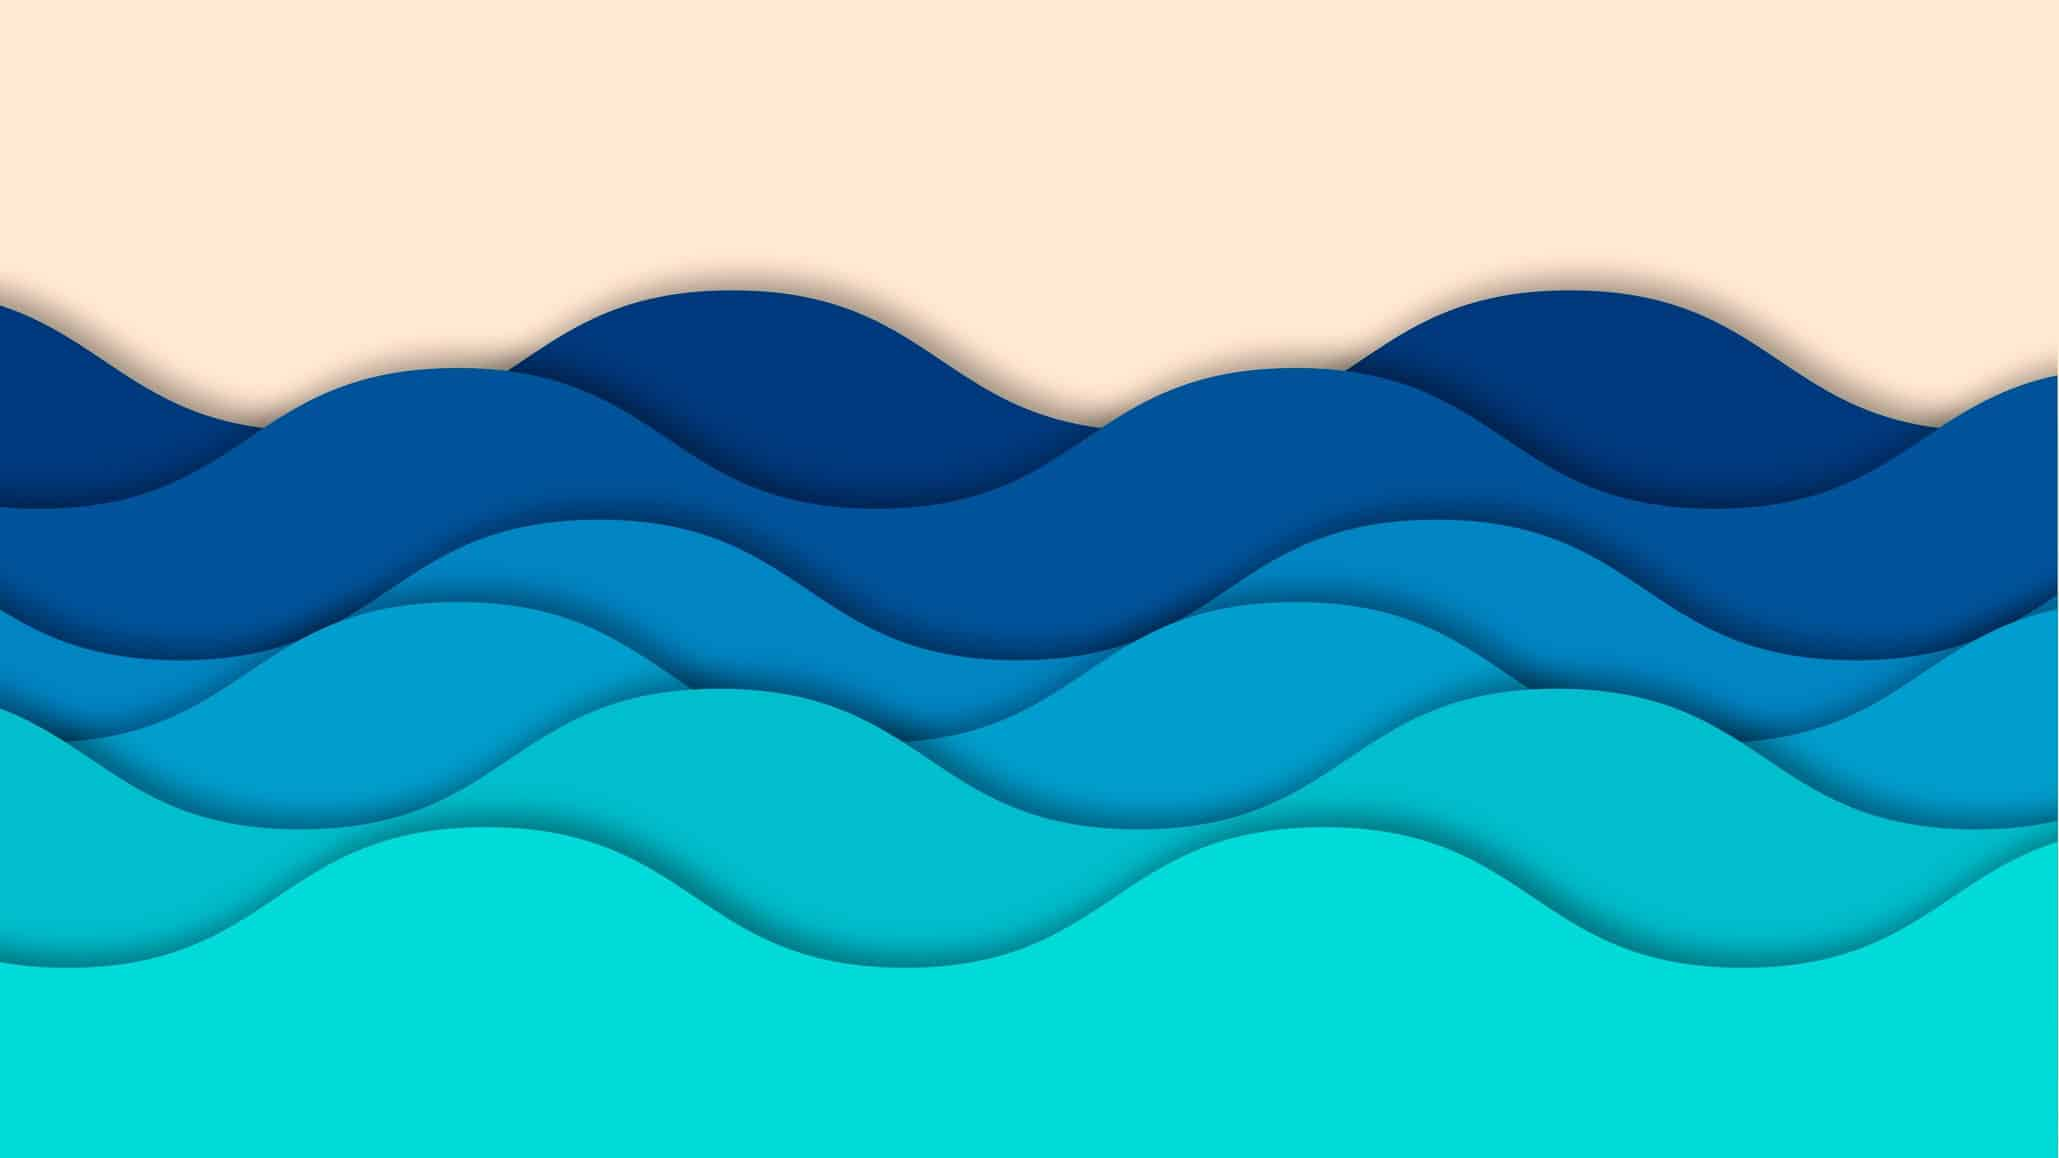 Graphic illustration of series of blue waves